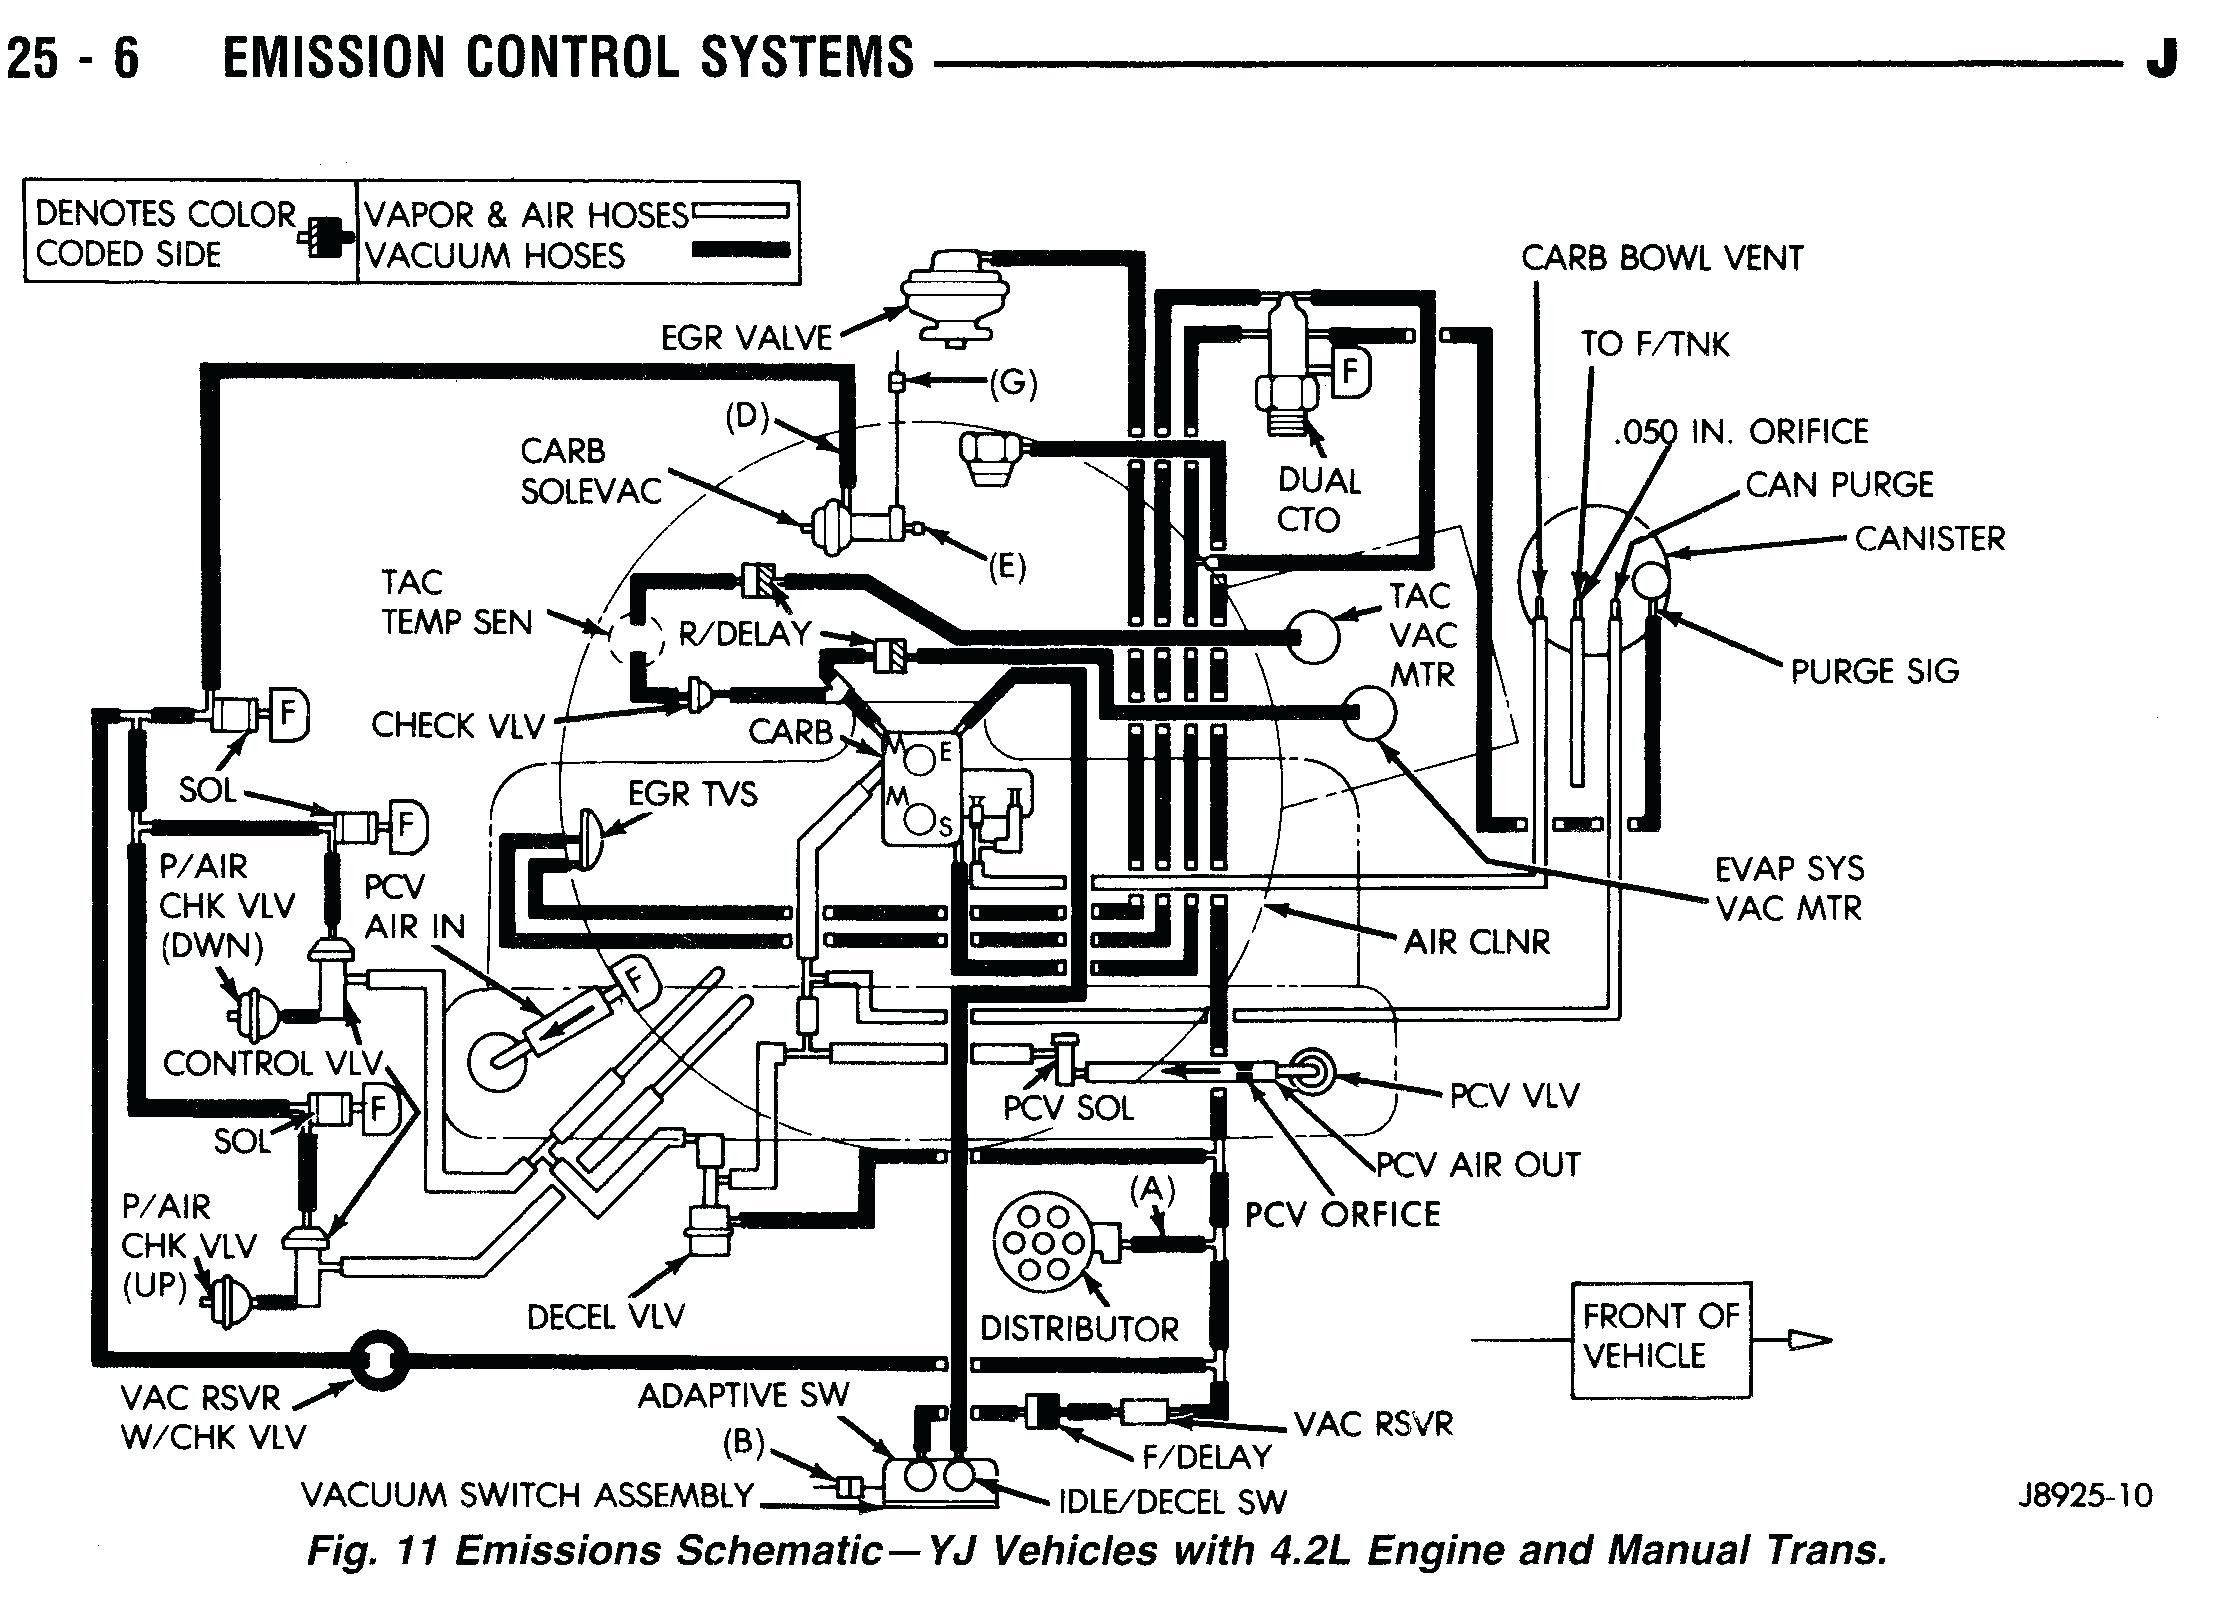 Wiring Diagram For 86 Cj7 Library Jeep Engine 1986 Ford F150 Brake Line Layout Forums Truck